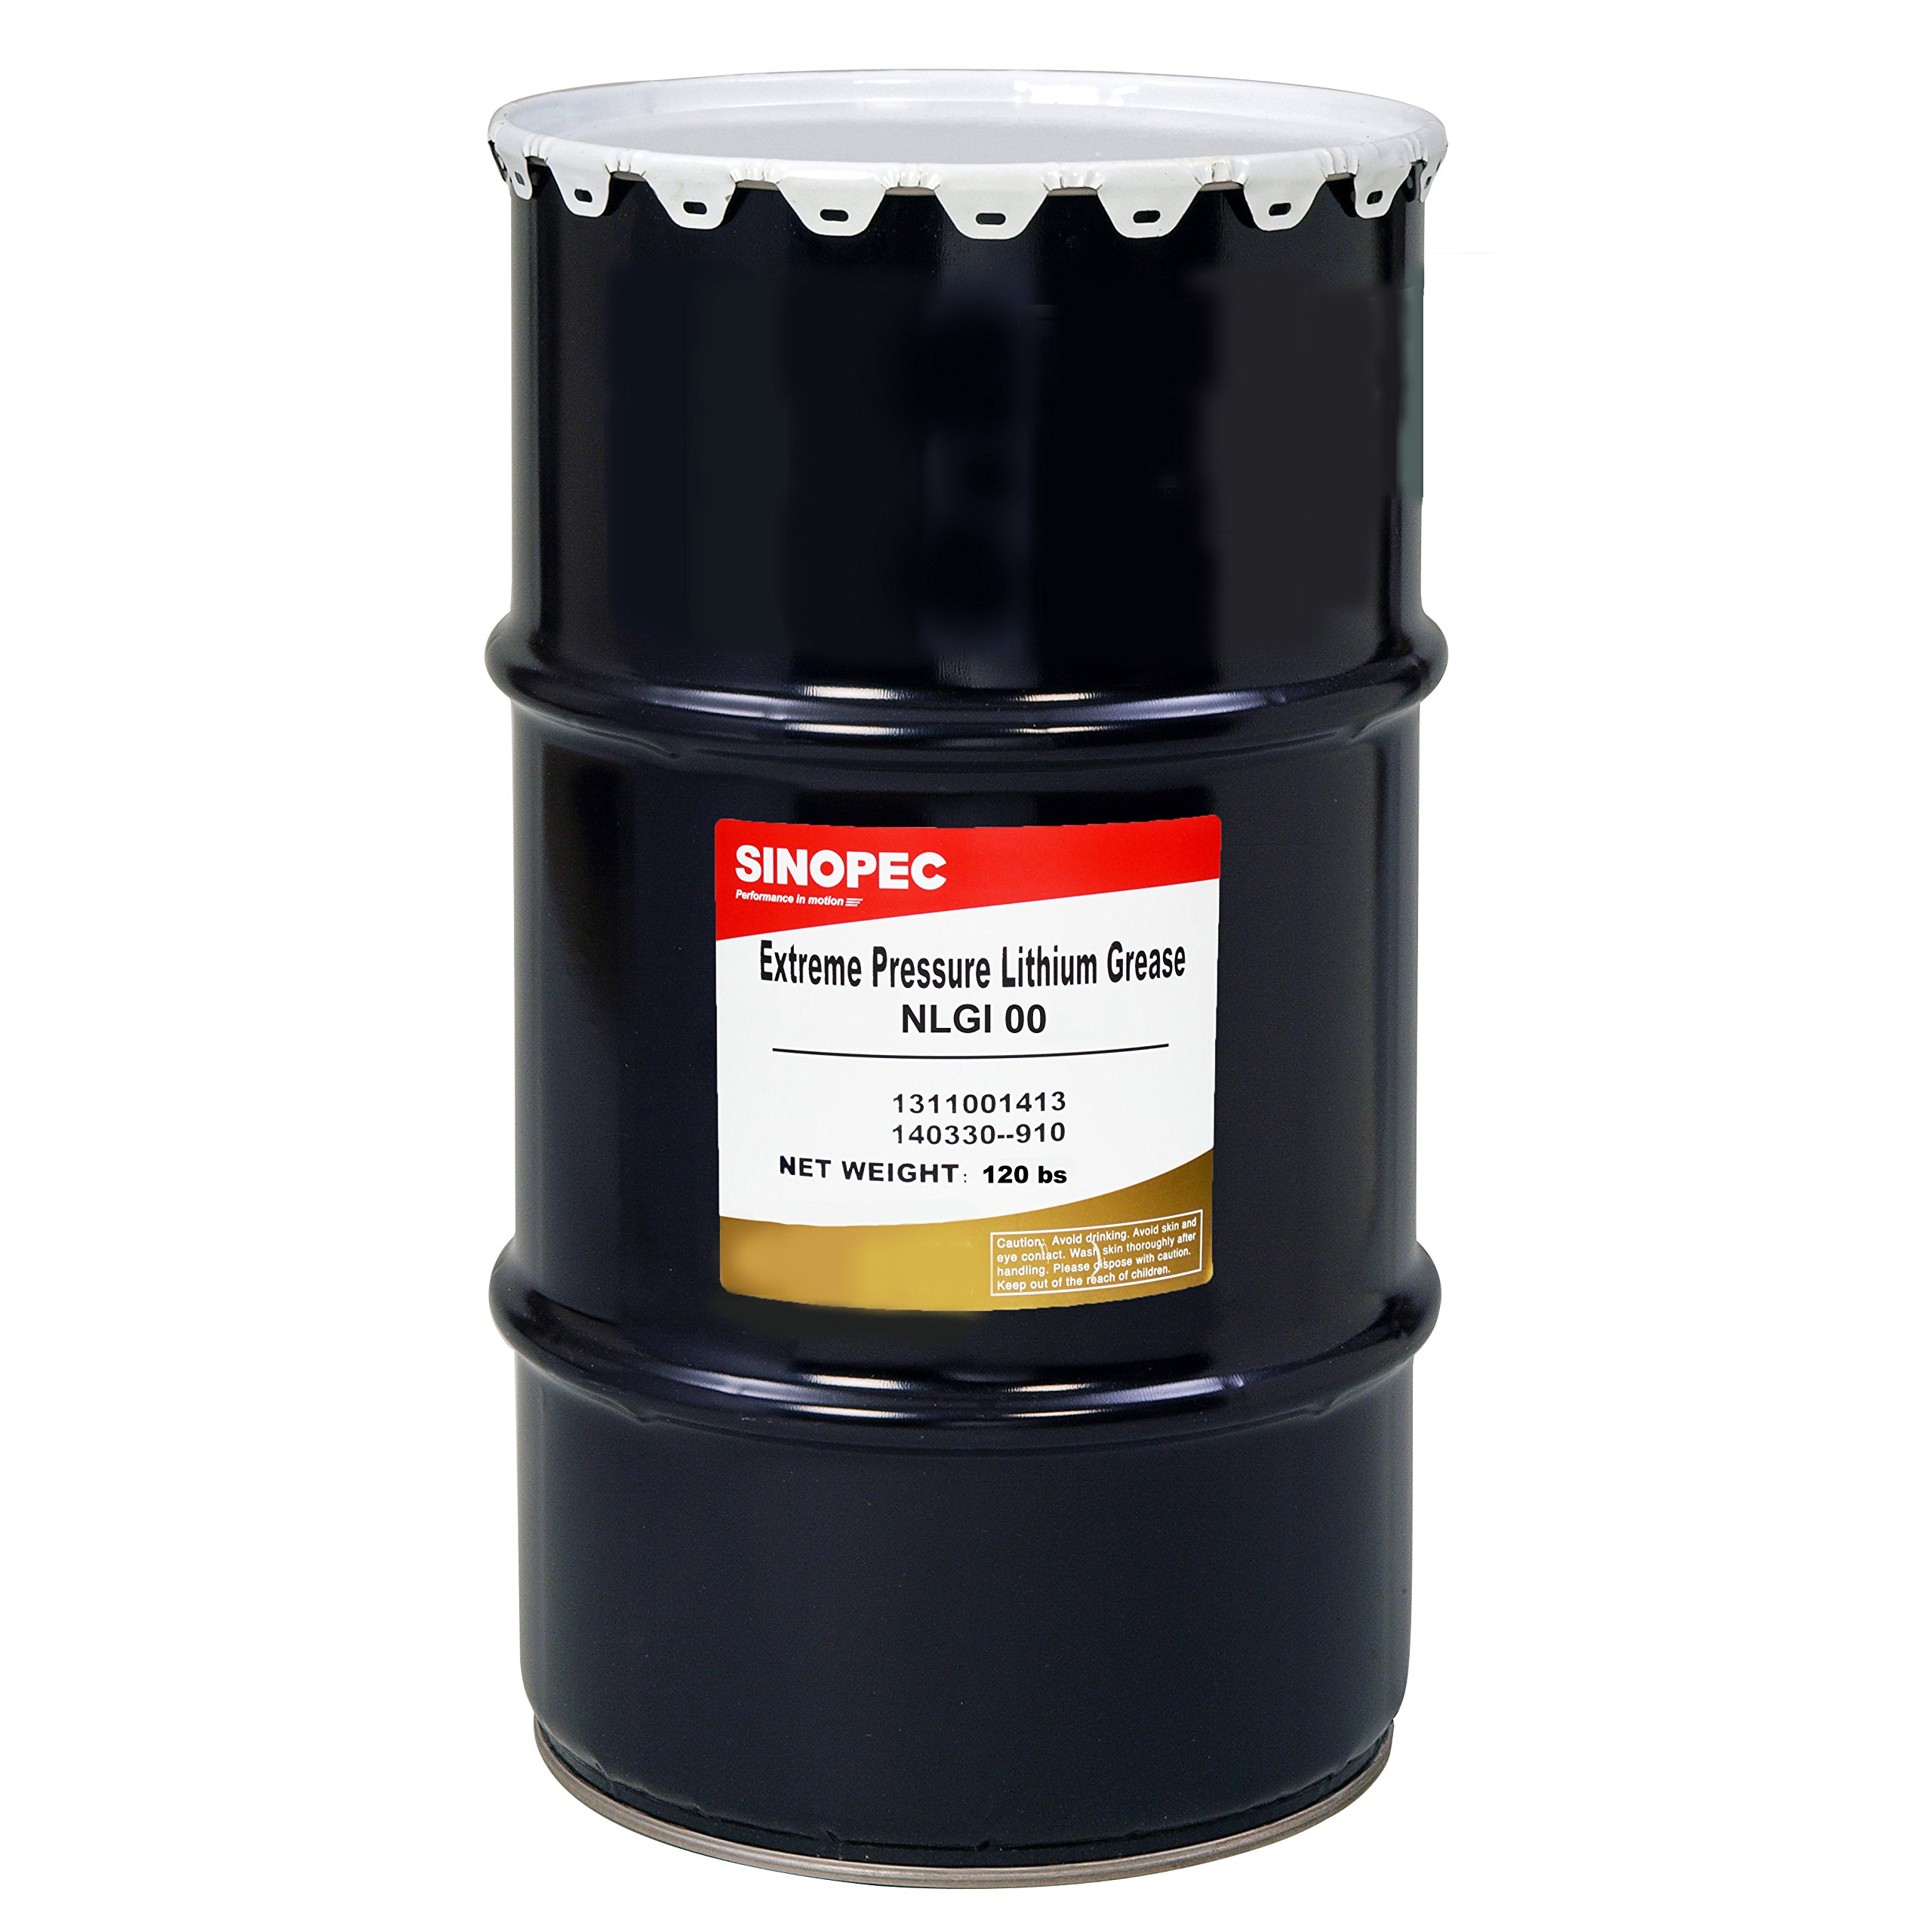 Sinopec EP00 Extreme Pressure Lithium Grease, Nlgi 00, 120 lb. by Sinopec